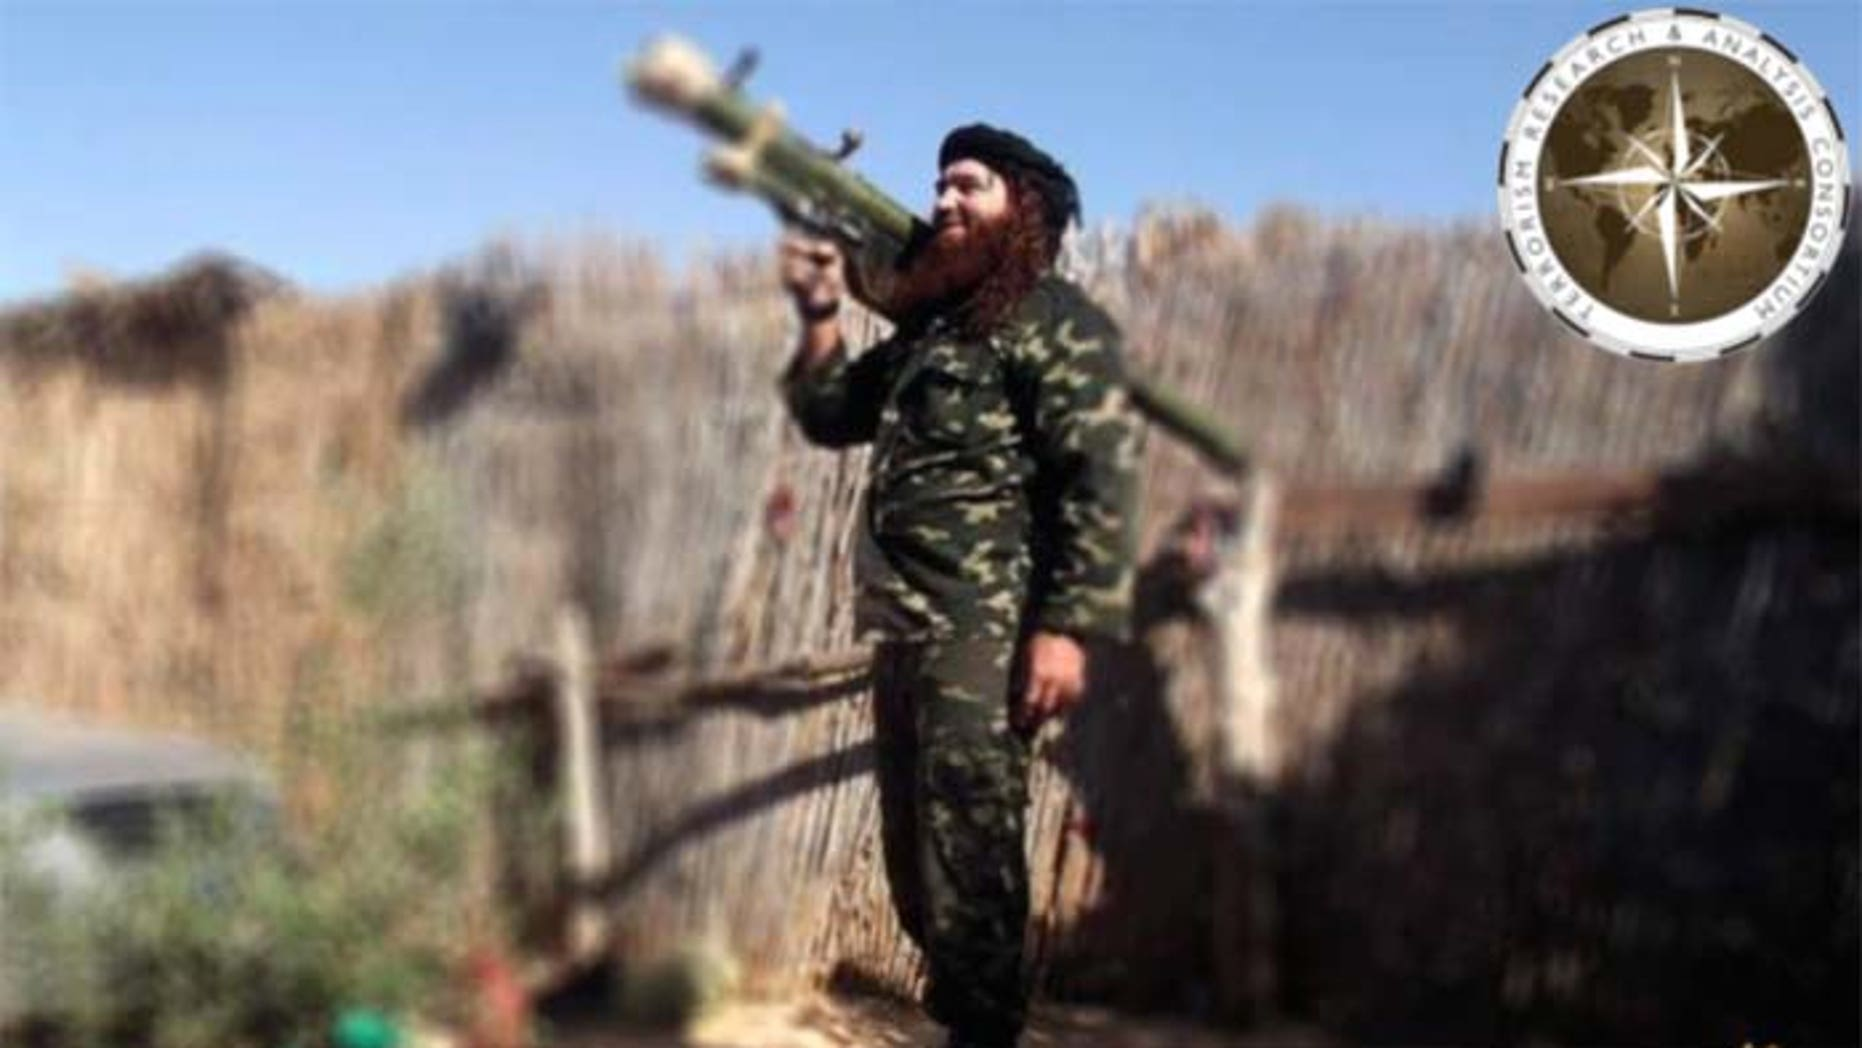 ISIS in the Sinai Peninsula has boasted of its weaponry, including the above photo showing a fighter with a Man Portable Air Defense System. But US authorities have ruled out the possibility a missile strike brought down the Russian airliner. (TRAC)